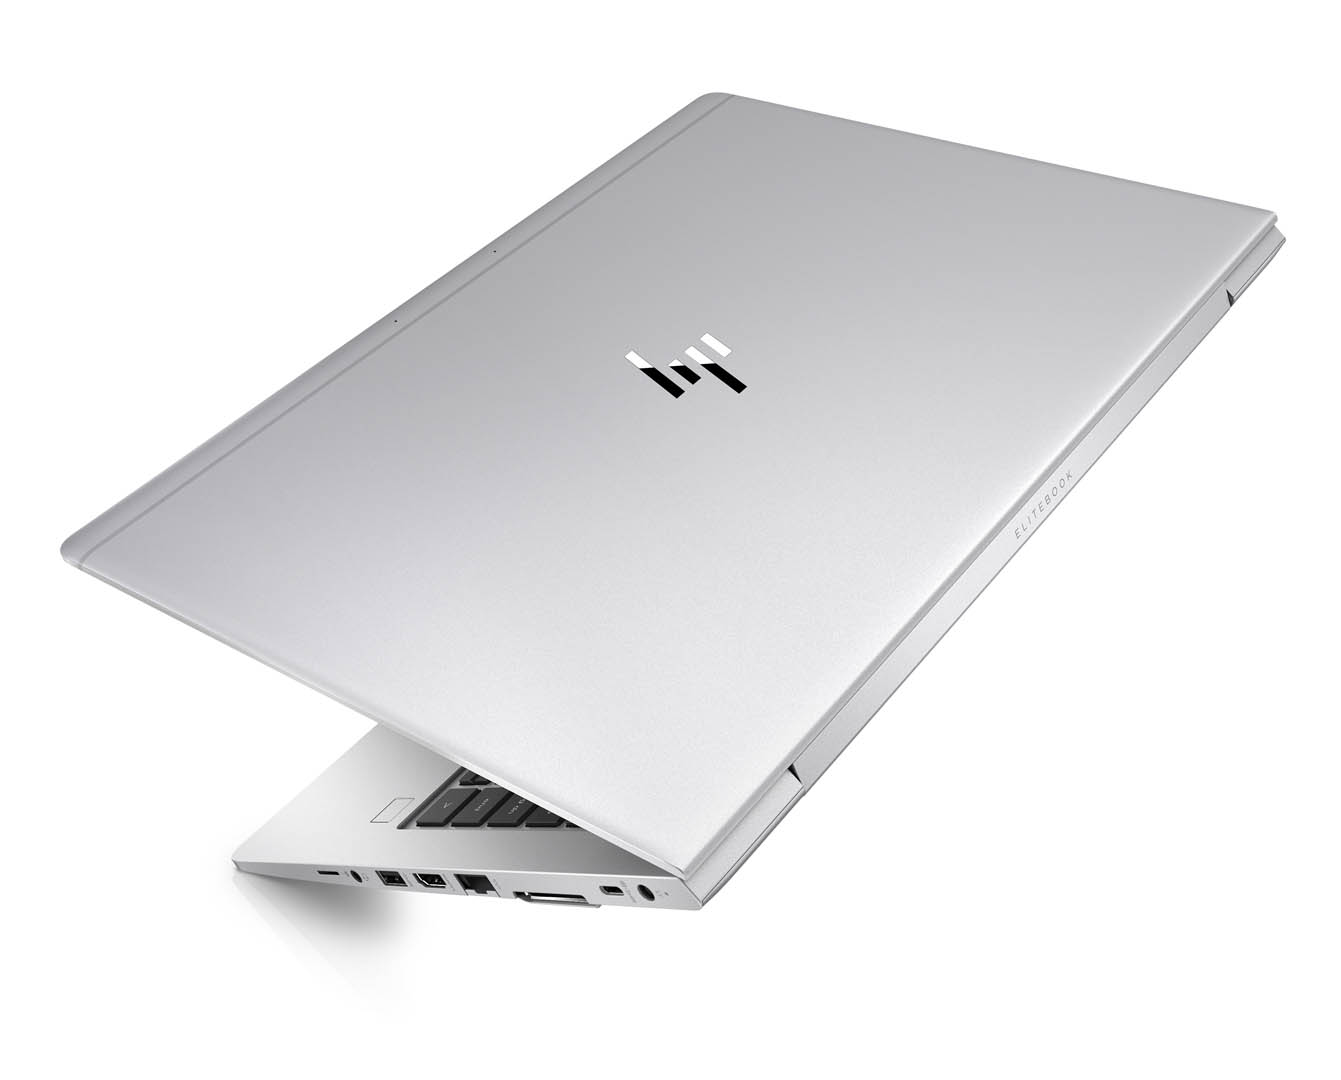 HP annuncia gli EliteBook 700 G6 e l'HP mt45 Mobile Thin Client 15